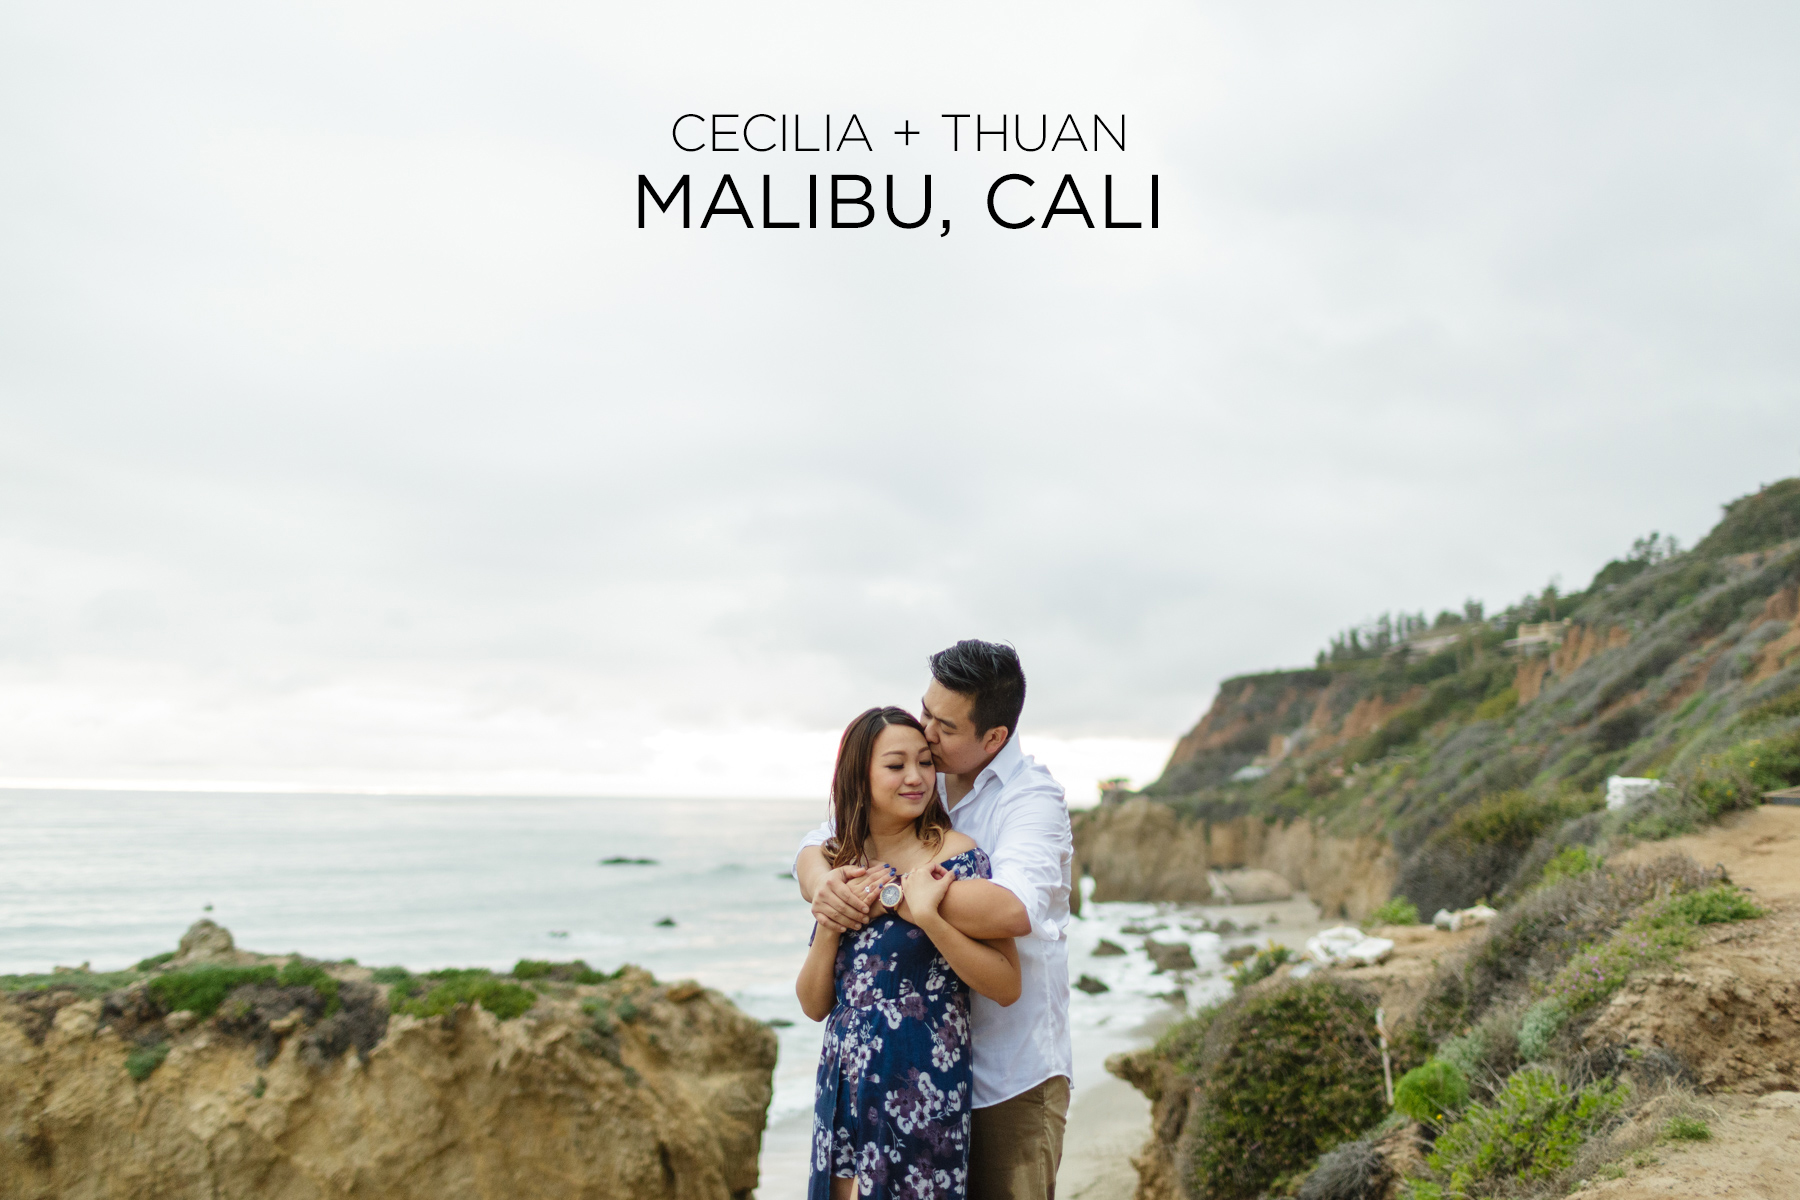 Cecilia and Thuan